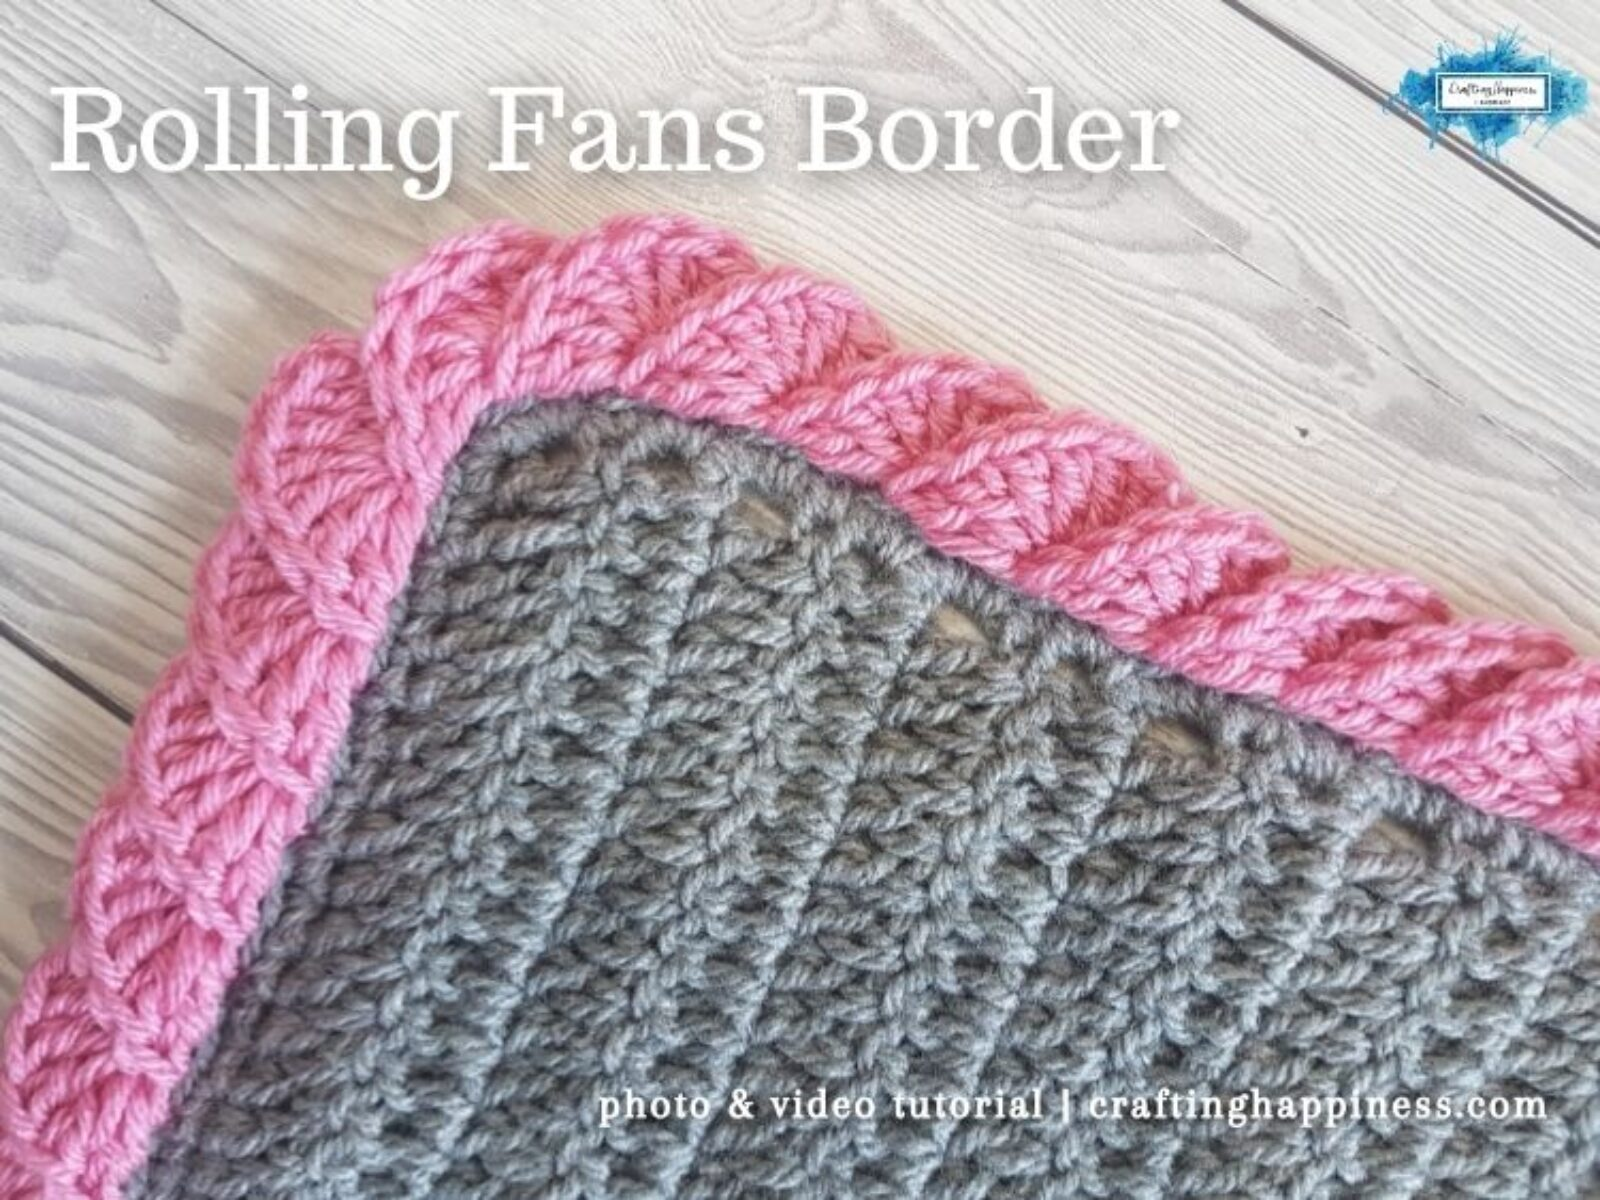 FB BLOG POSTER - Rolling Fans Border